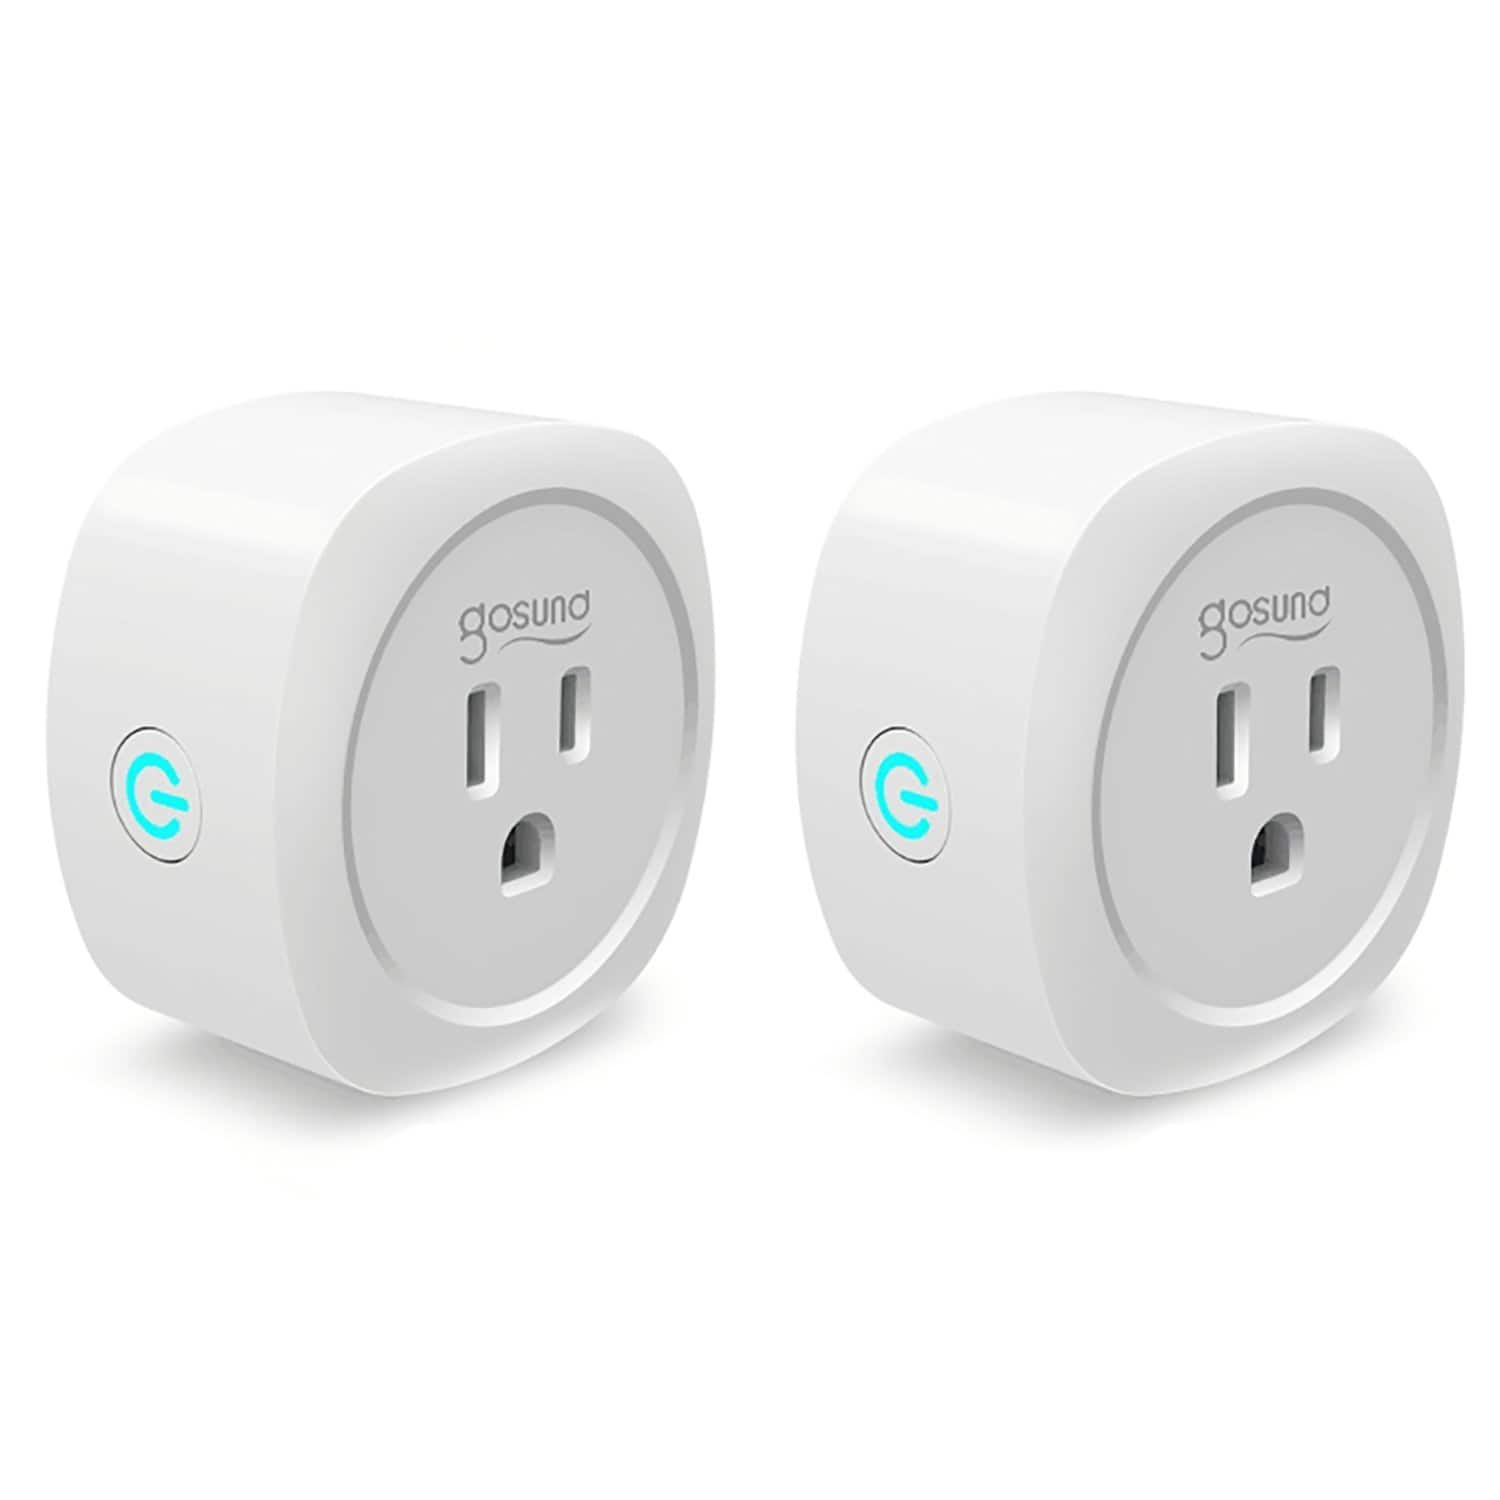 Gosund Wifi Smart Plug with Energy Monitoring (2-Pack), Compatible with Alexa Echo, No Hub Required at $20.69 @Amazon